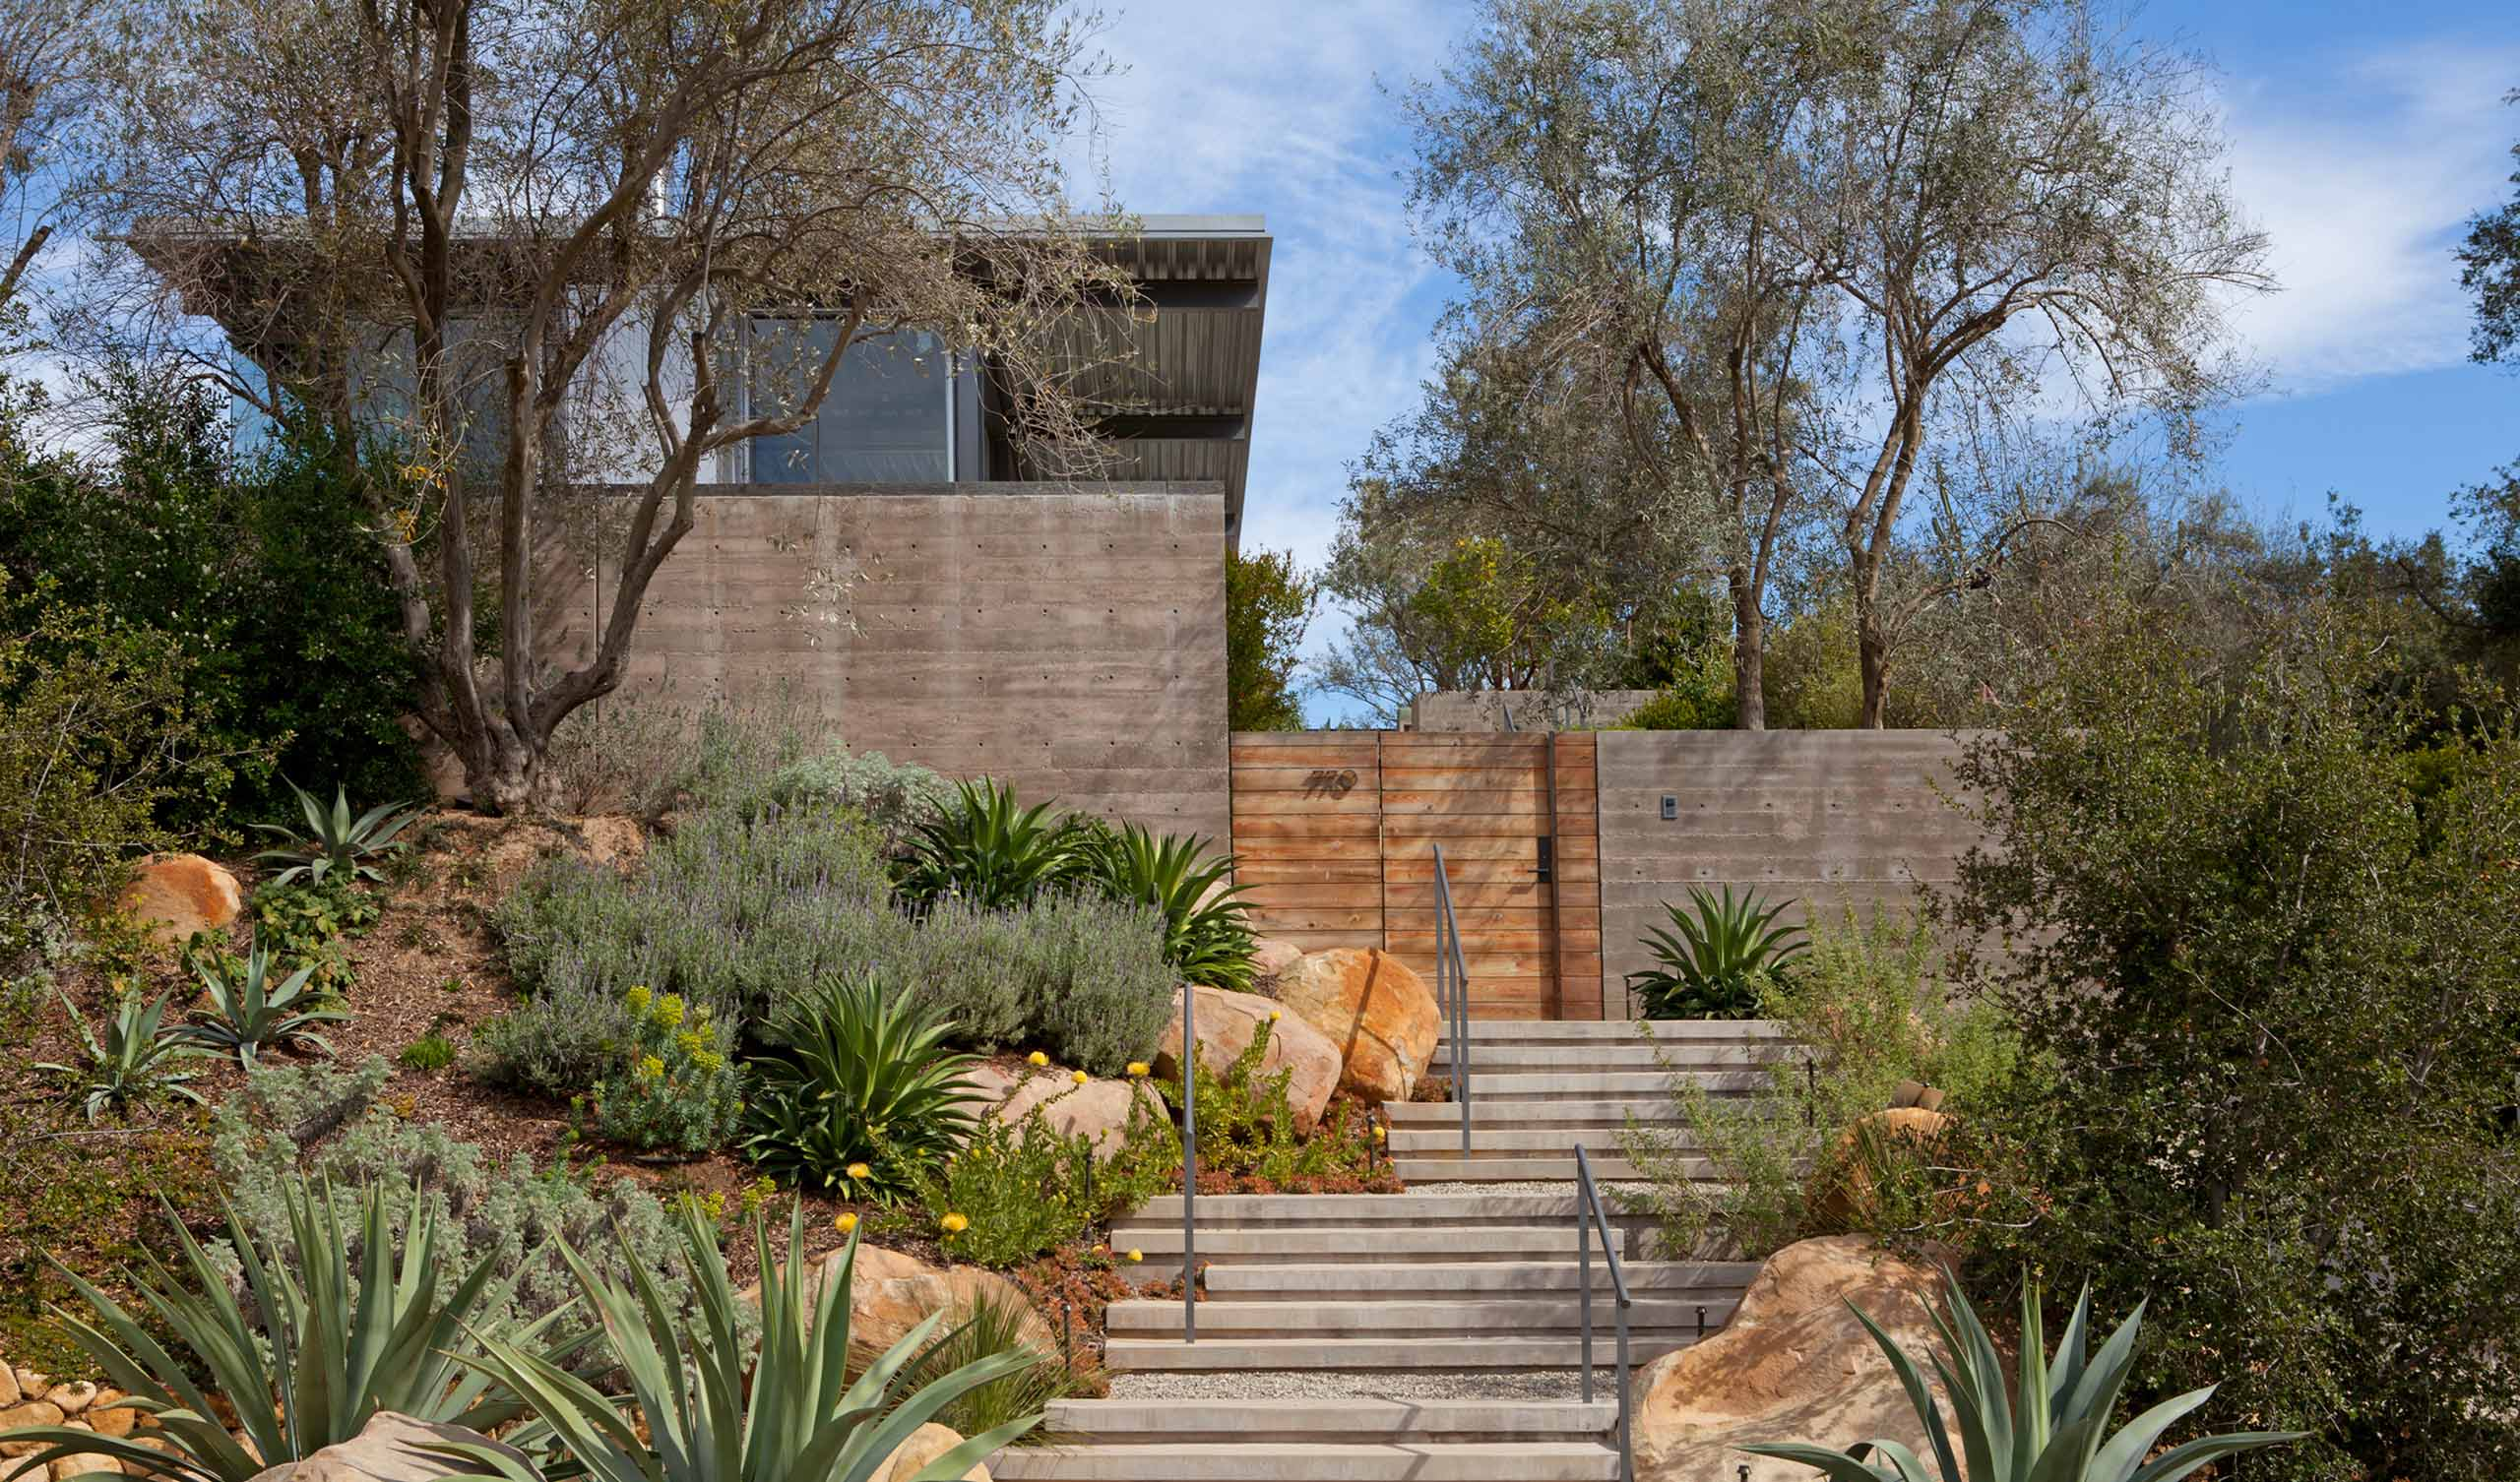 residence entrance with steps and desert planting